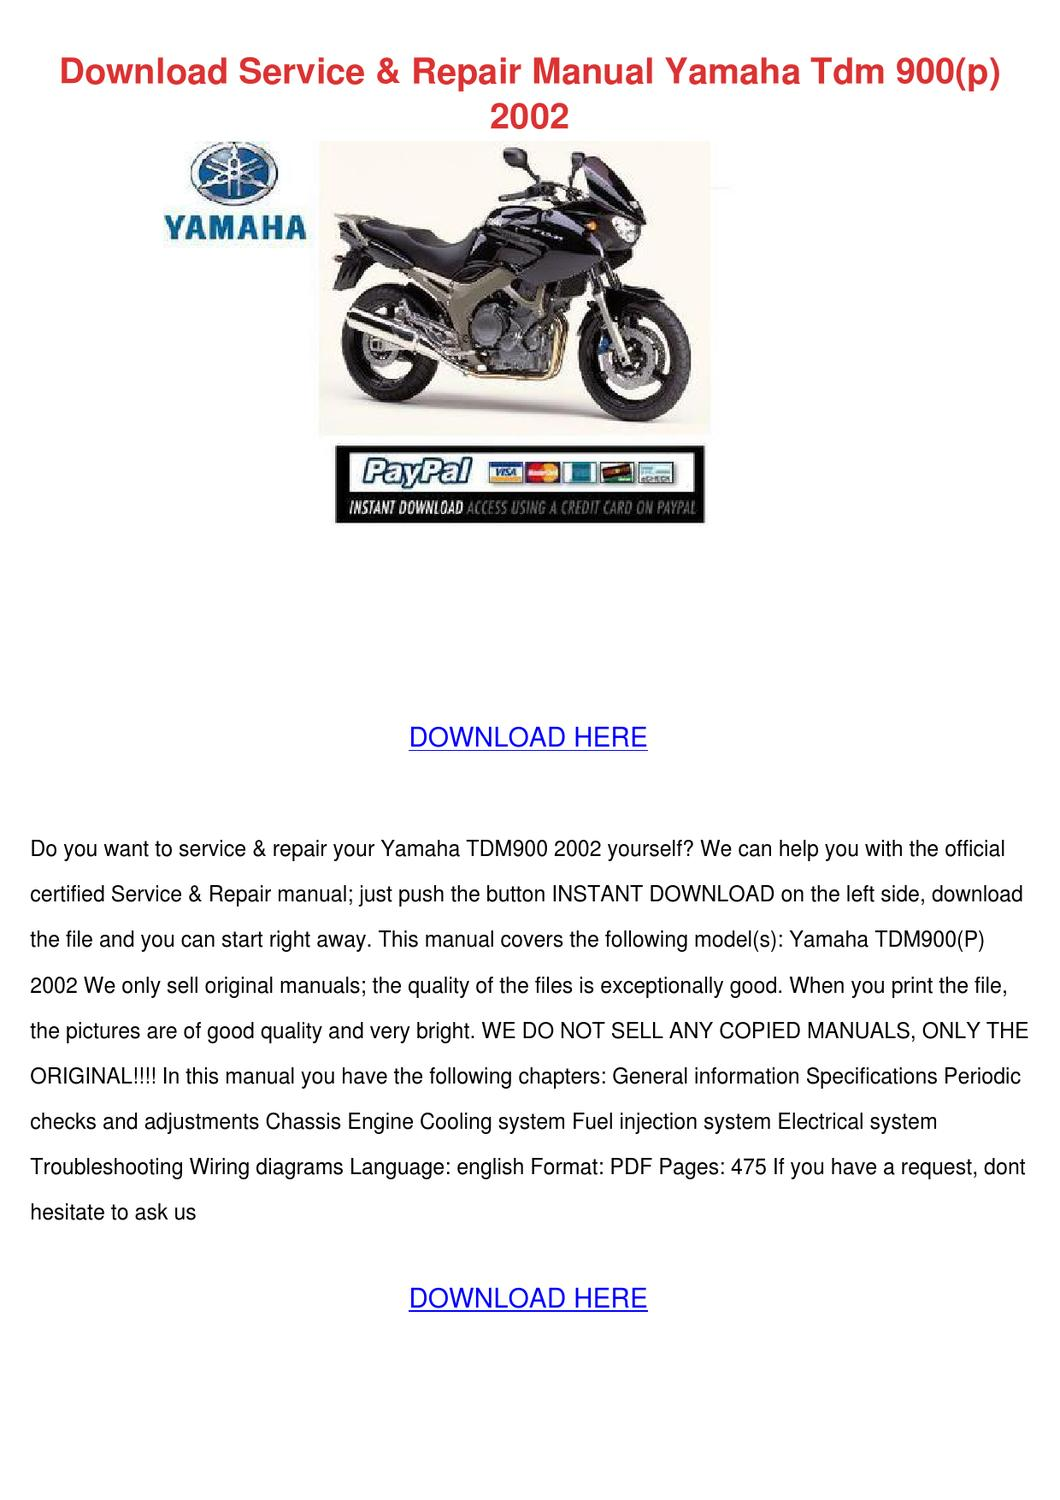 Download Service Repair Manual Yamaha Tdm 900 By